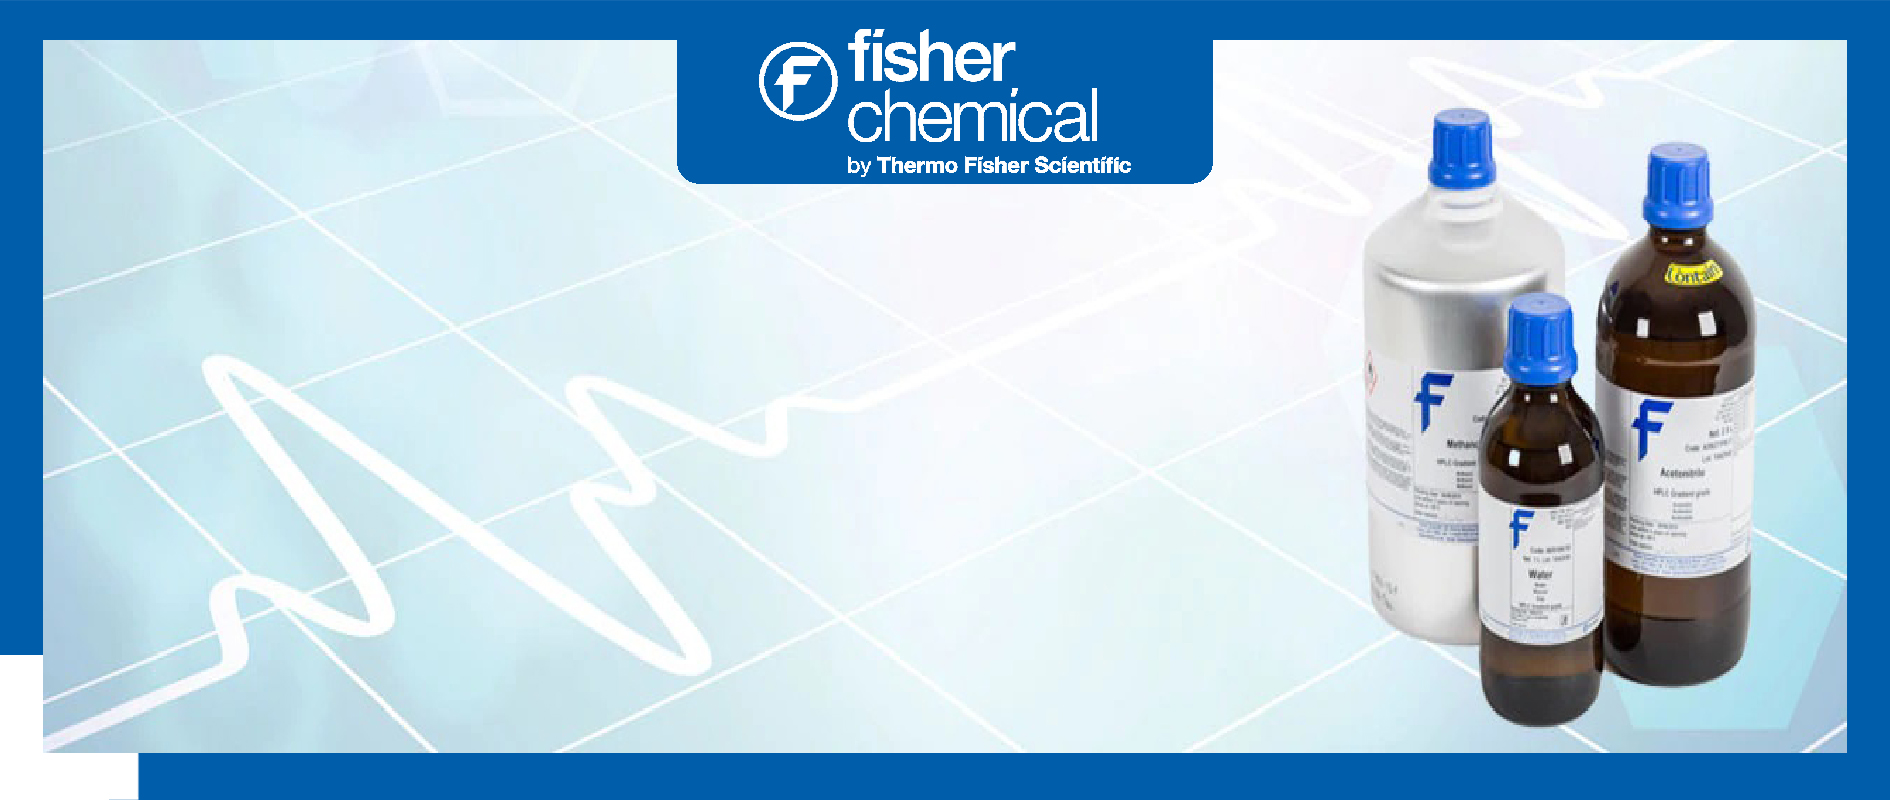 Find the perfect chemical Products for your analytical application Explore products for: Chromatography, elementary analysis, general analysis and routine lab work